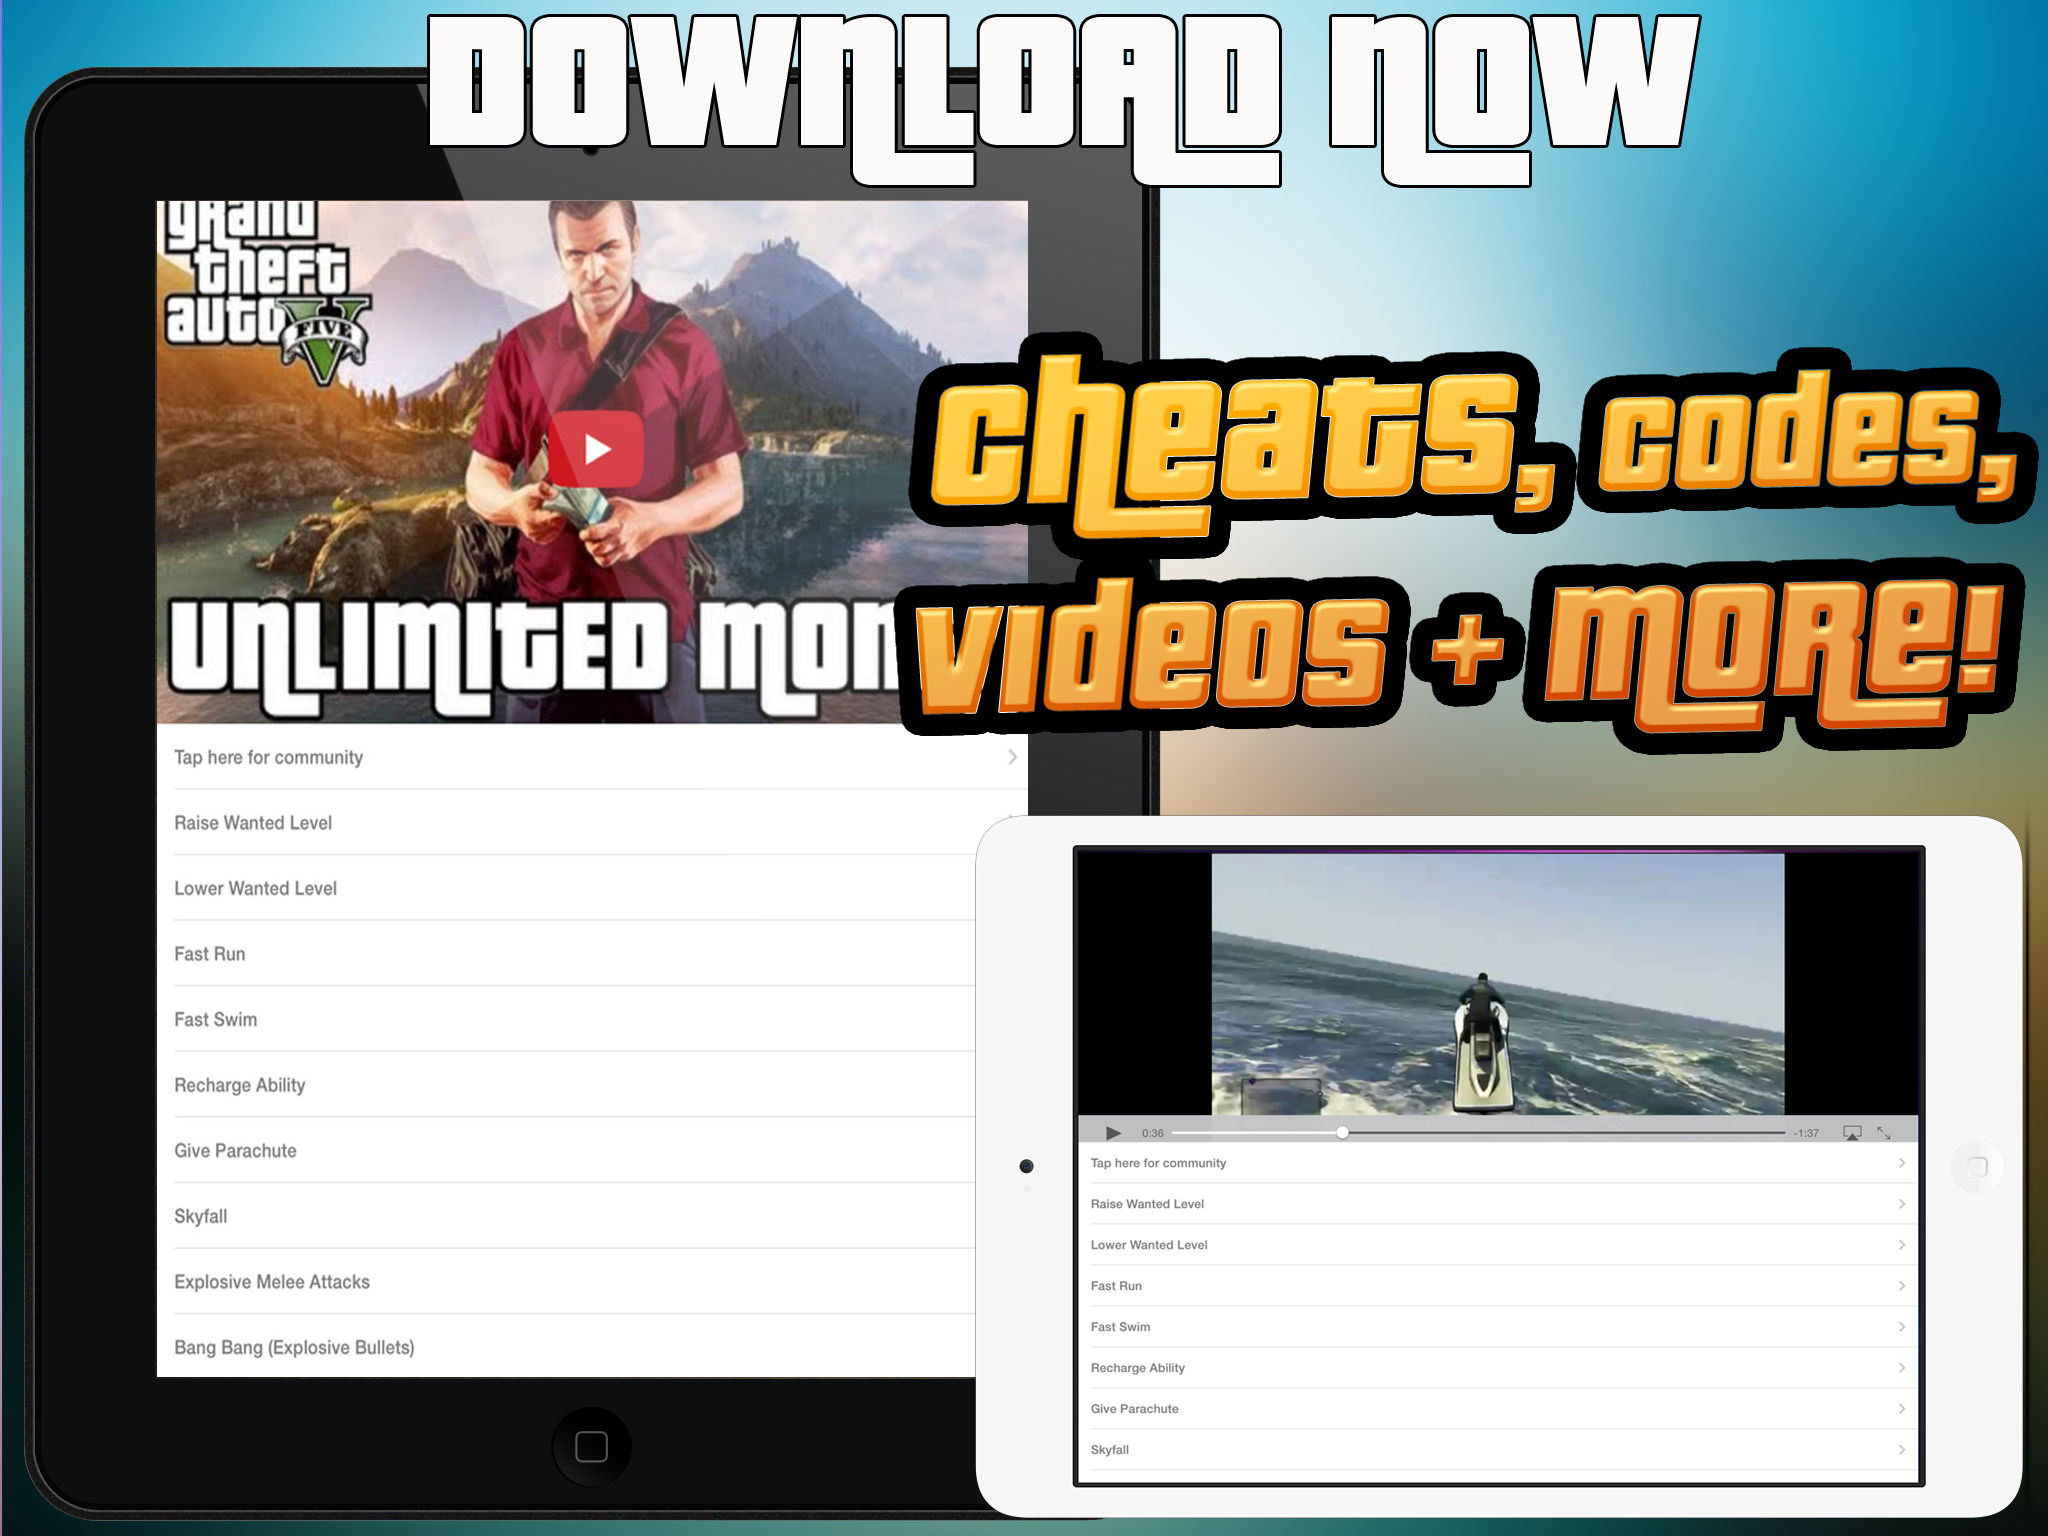 Cheat Suite Grand Theft Auto 5 App Ranking and Store Data | App Annie